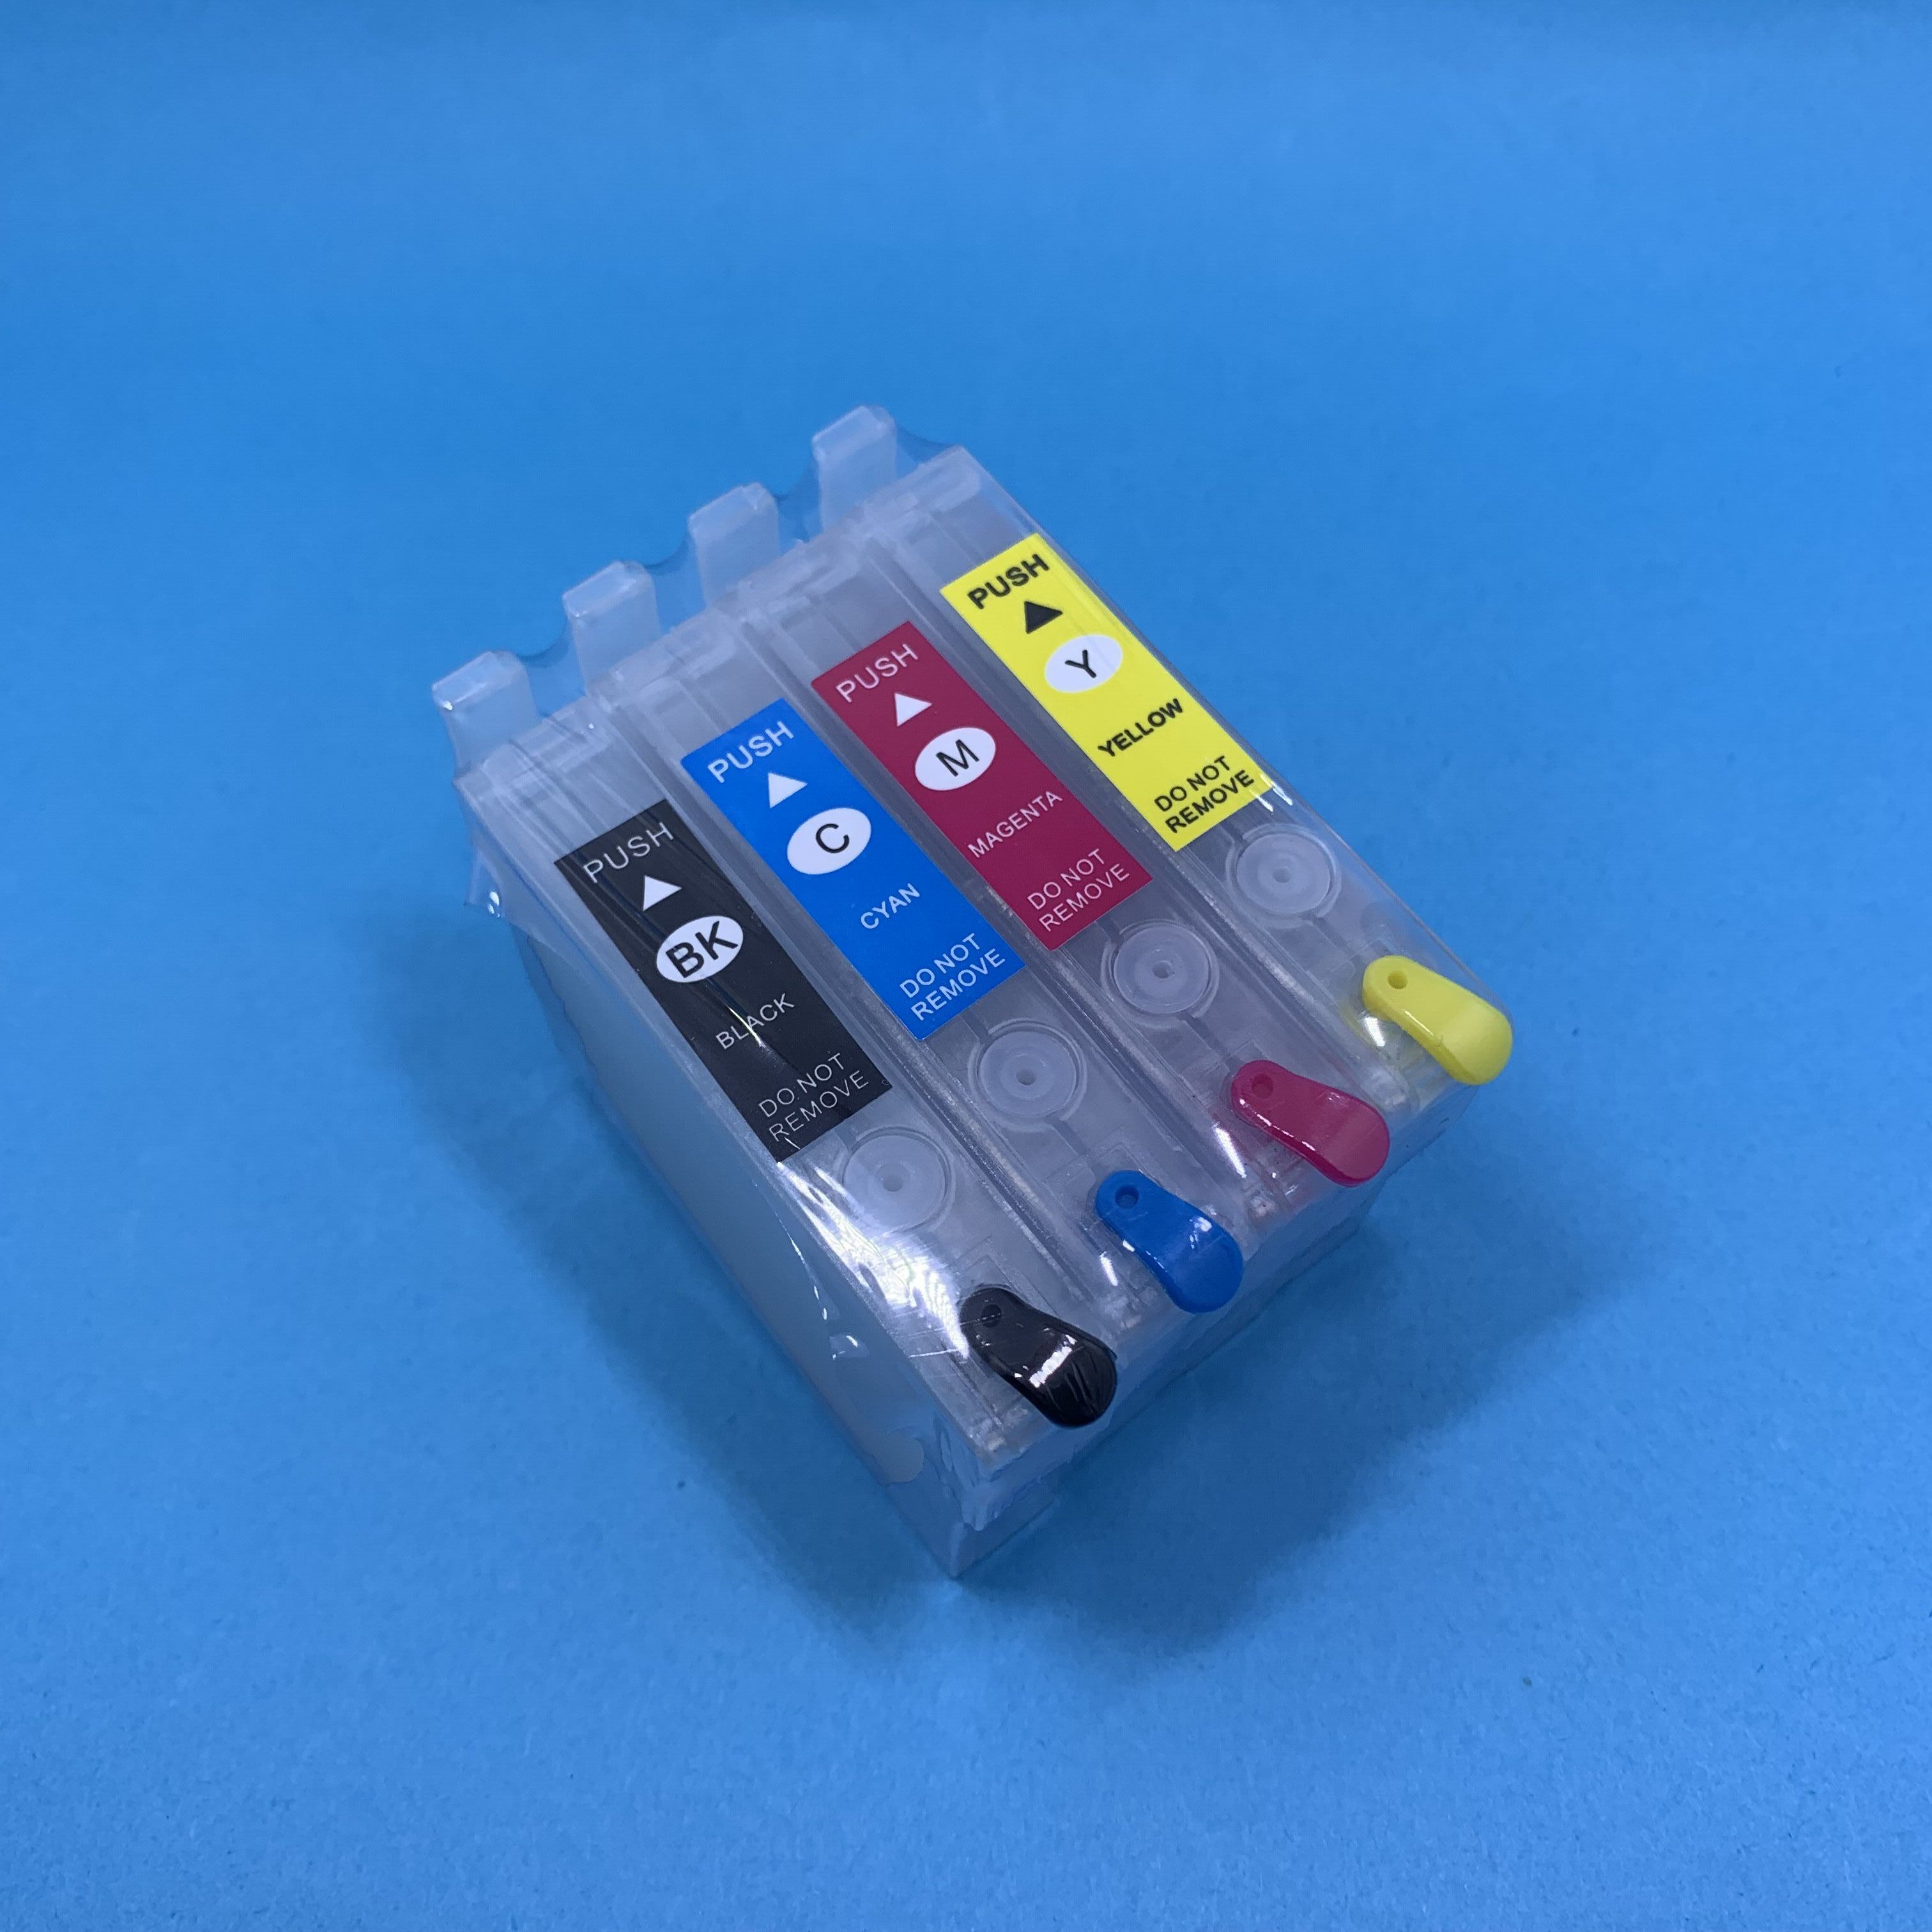 YOTAT T2991 29XL T2994 Refillable ink cartridges T2991 T2992 T2993 T2994 for <font><b>Epson</b></font> XP342 <font><b>XP345</b></font> XP442 XP445 XP-445 XP-345 XP-342 image